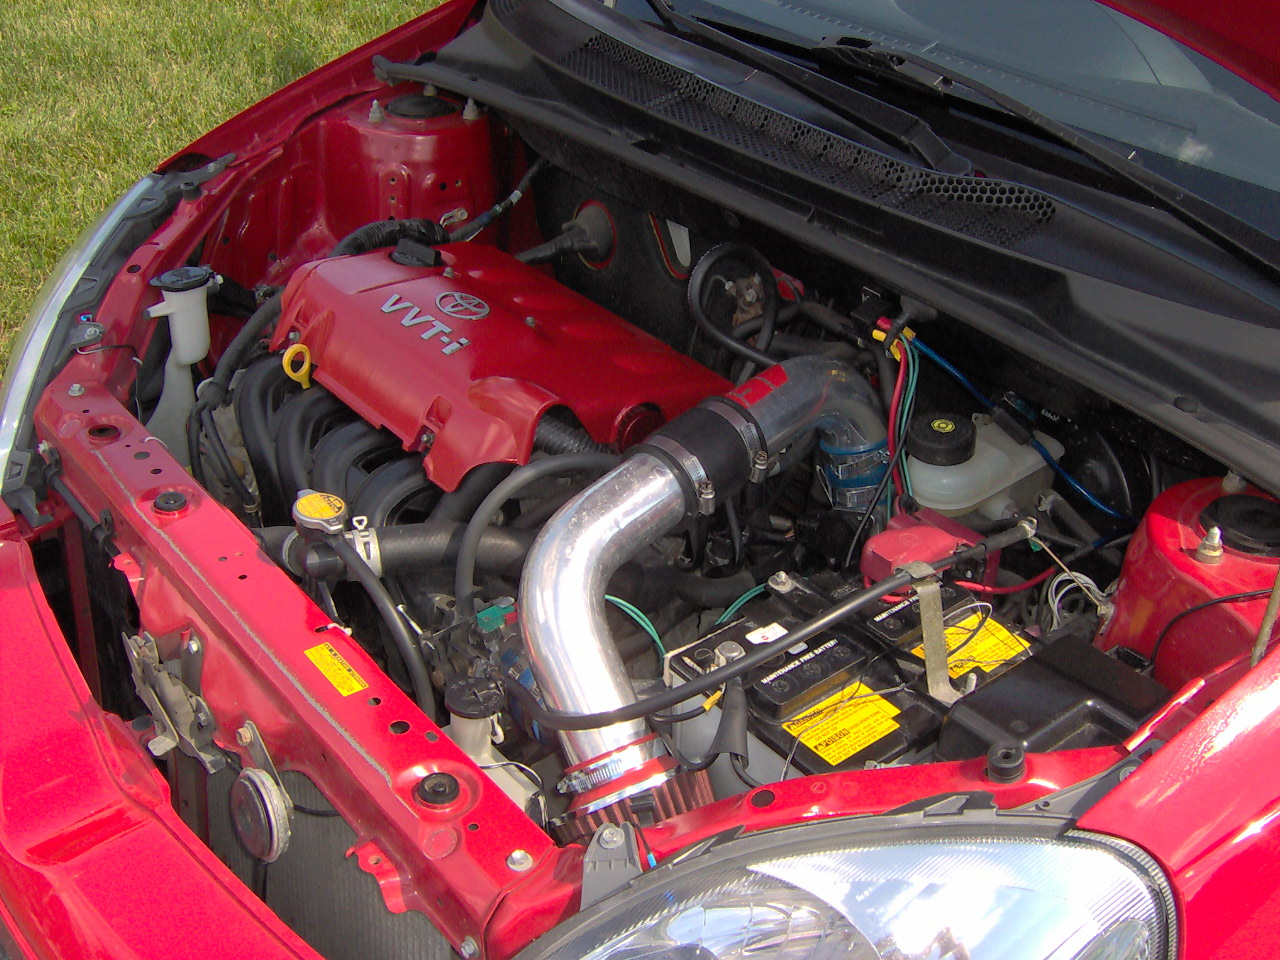 Toyota ECHO engine #2